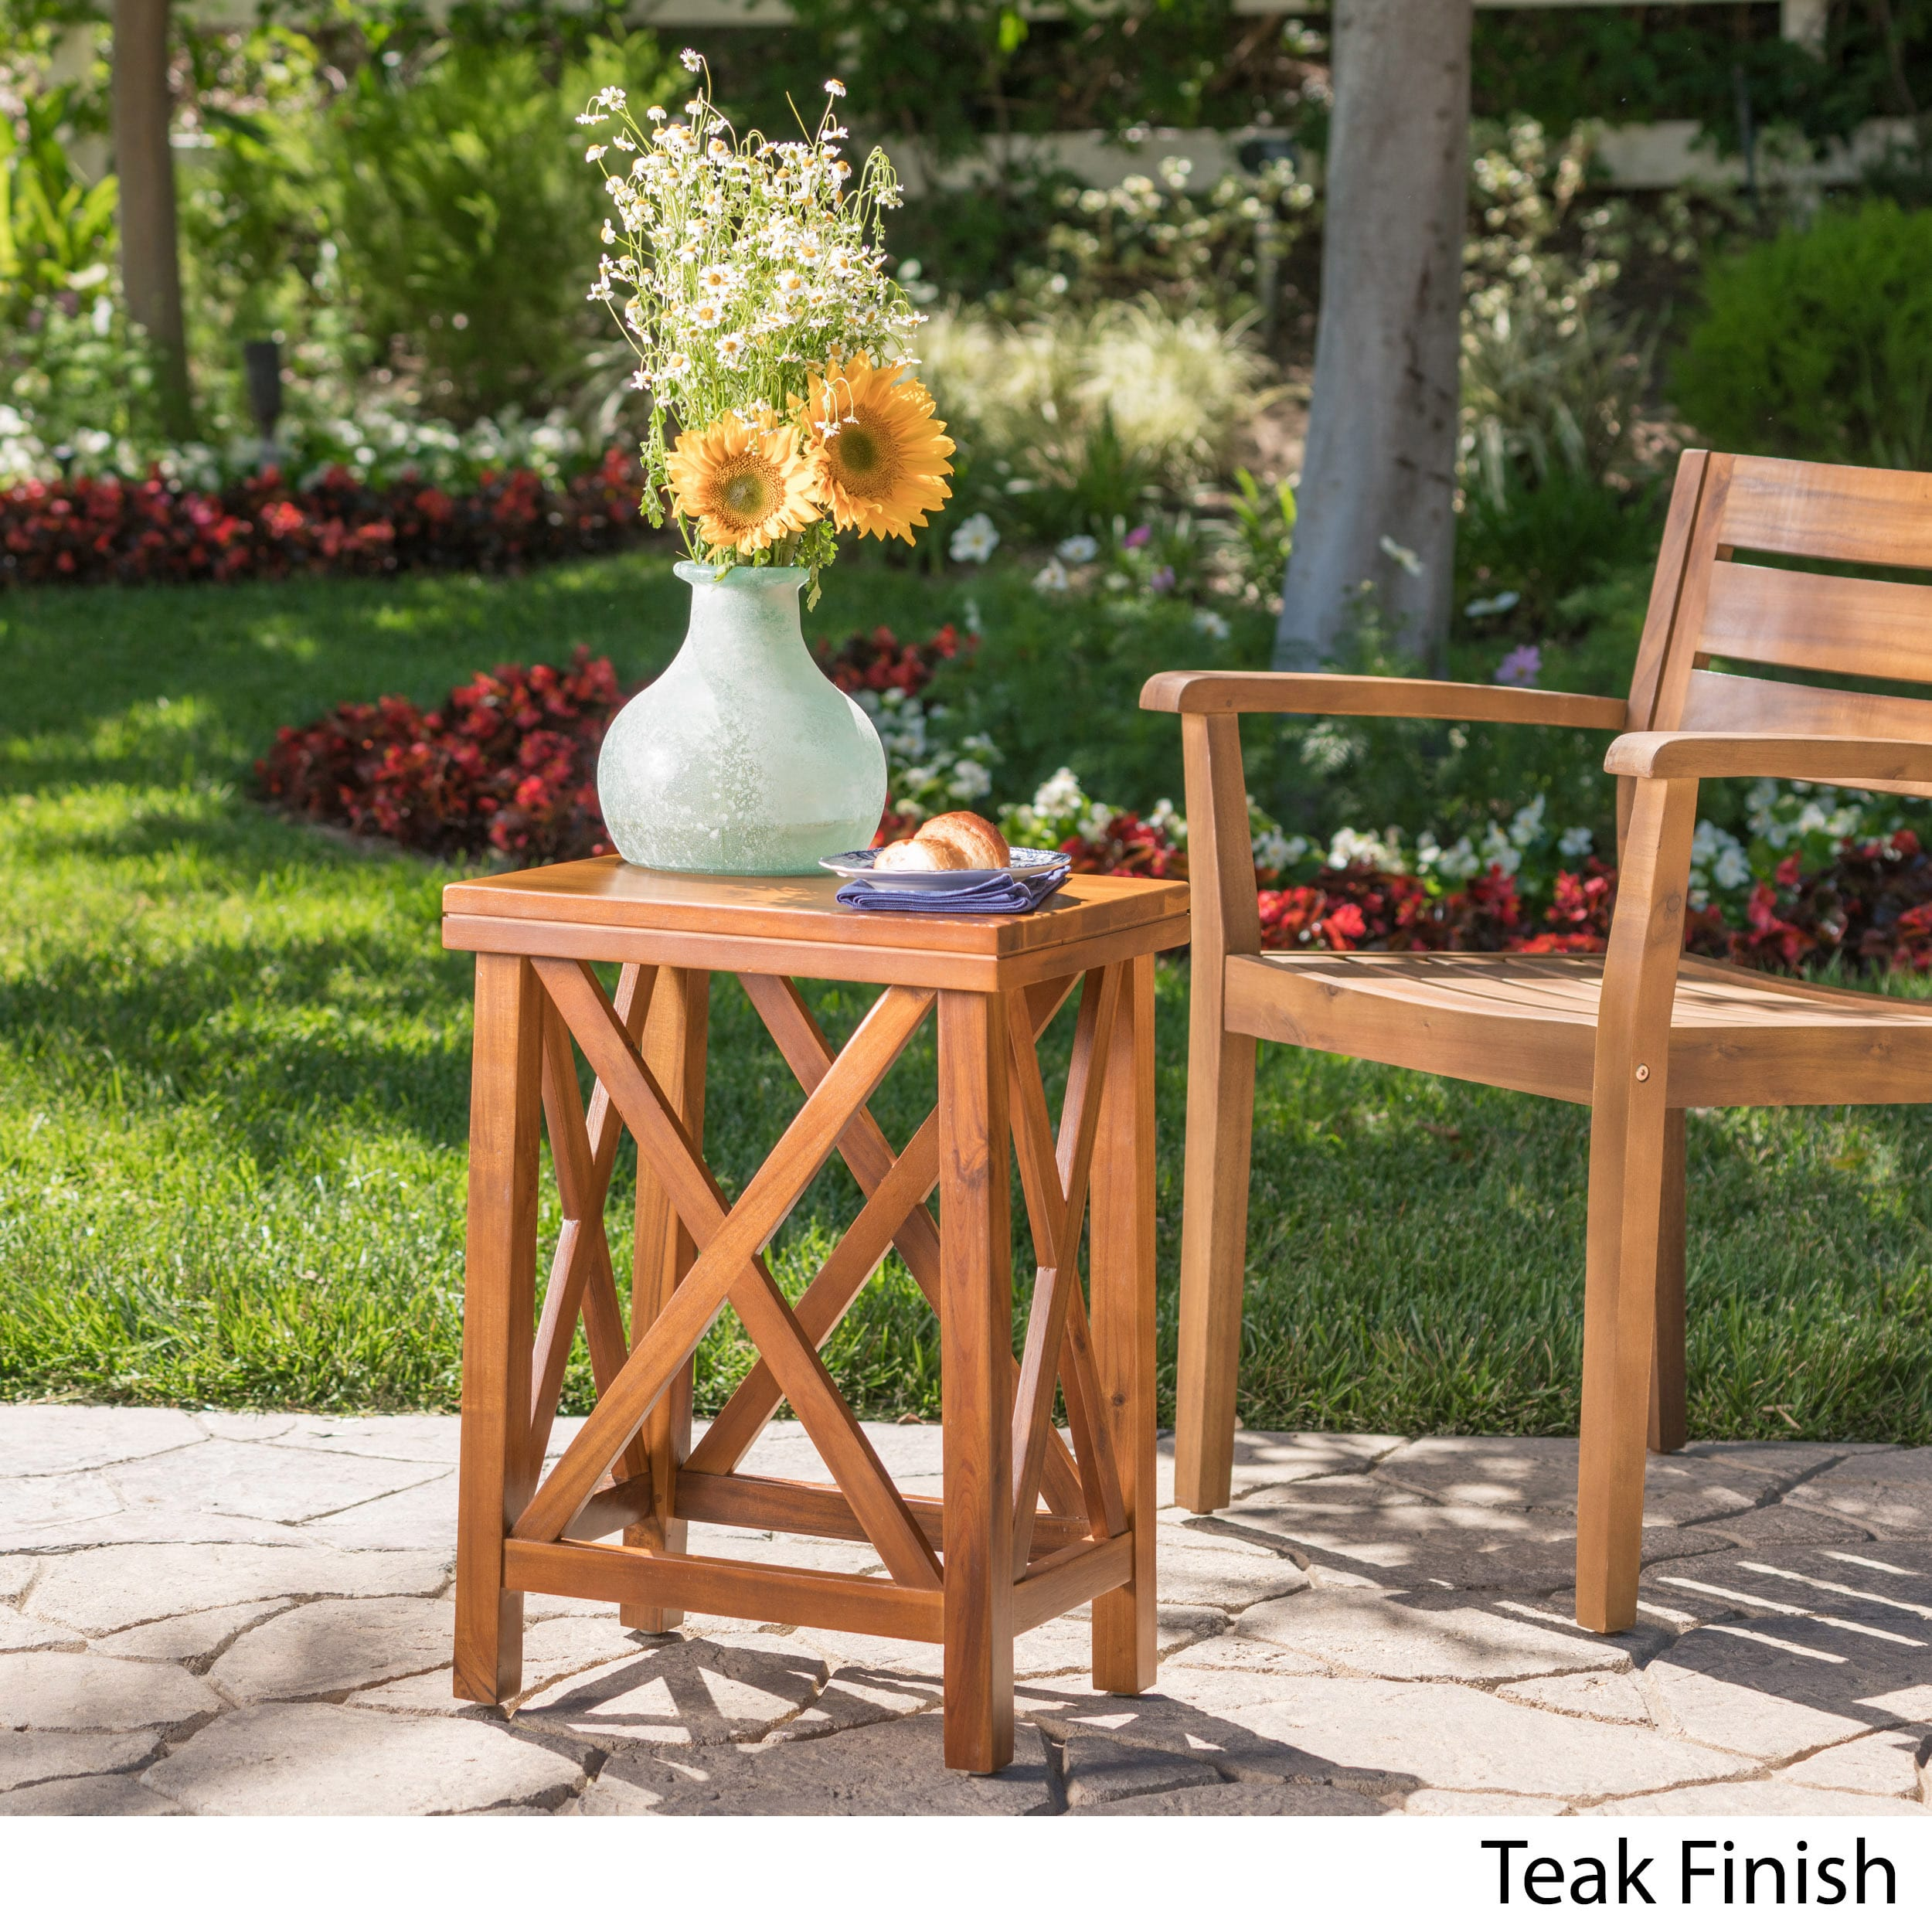 lily outdoor wood acacia accent table christopher knight home free shipping today mosaic garden side pier one clearance ikea small storage leather chairs with arms pie shaped end